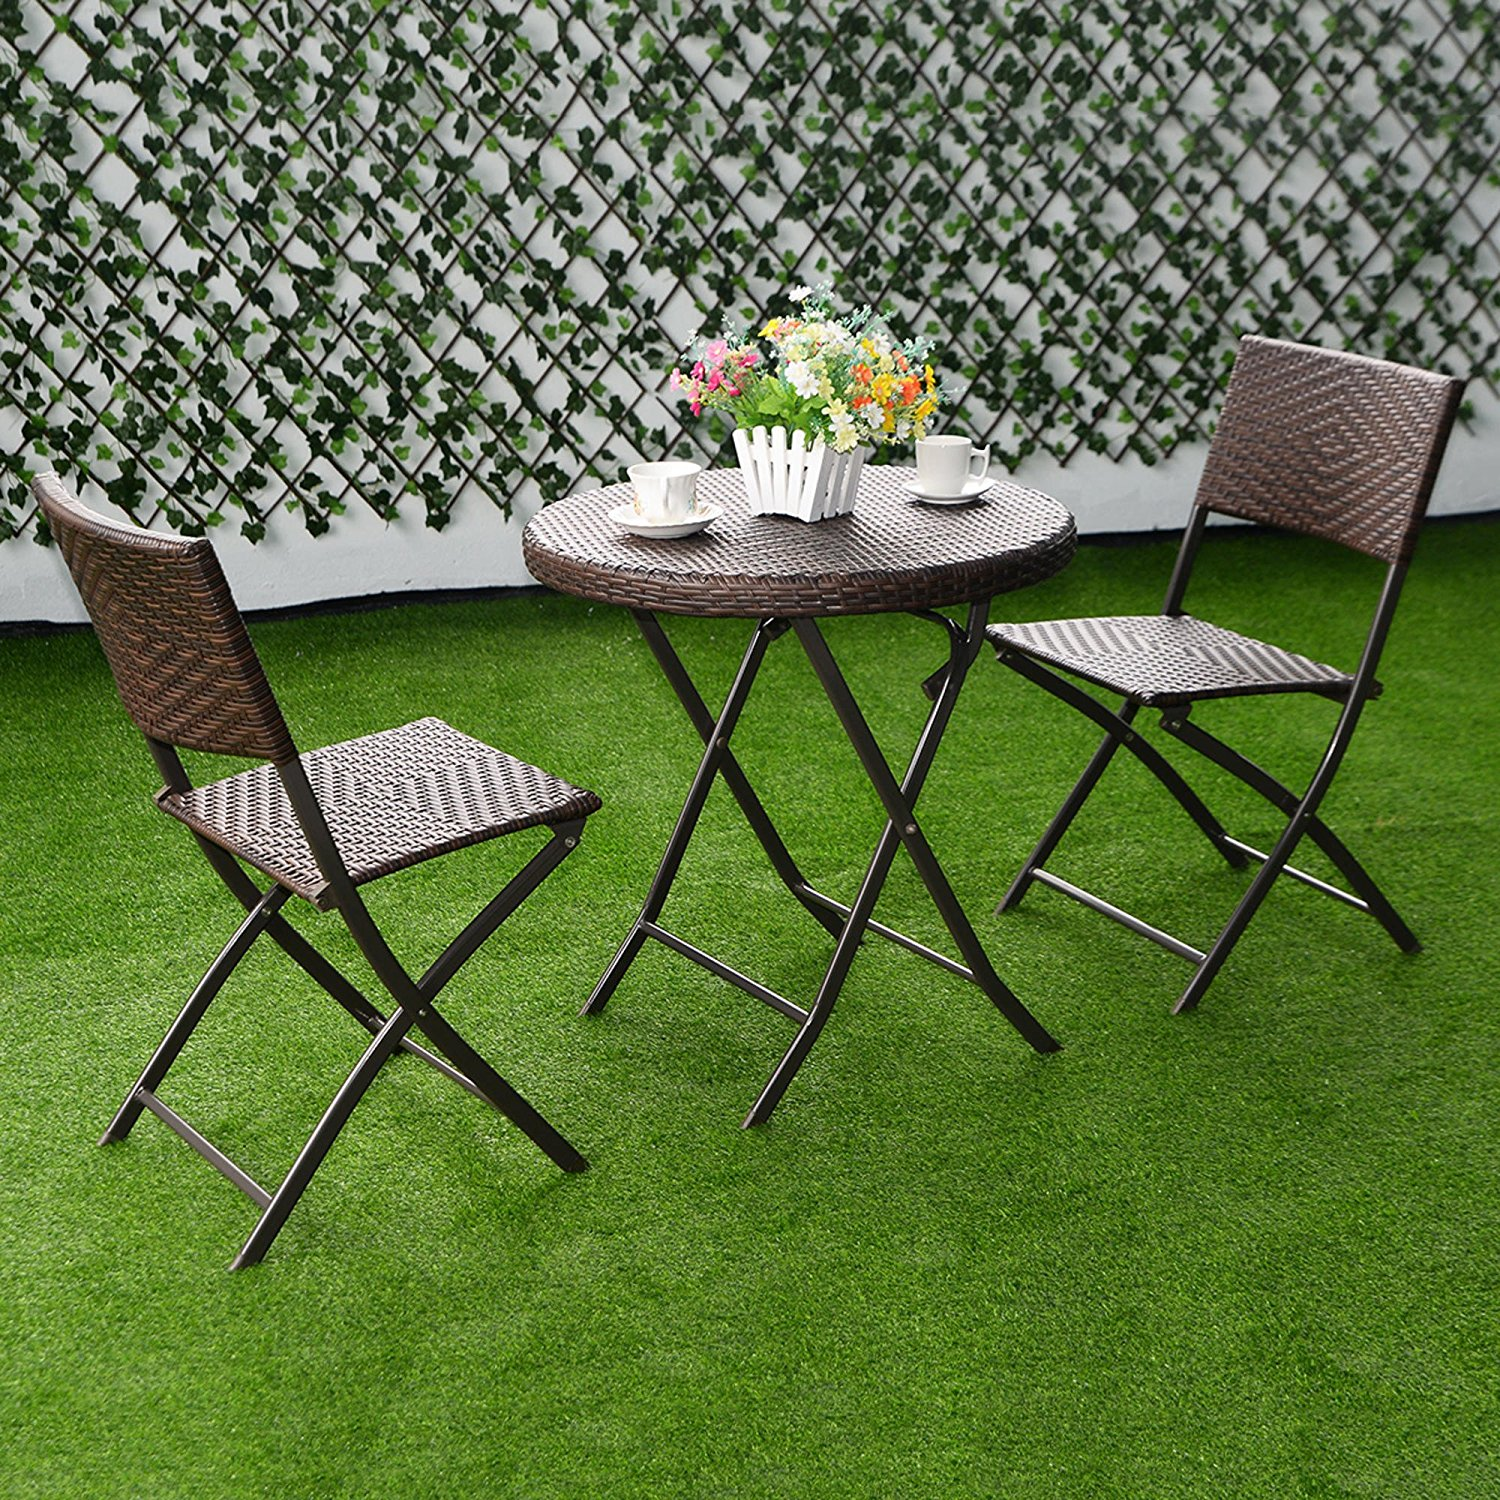 Get Quotations · 3 Piece Patio Bistro Set Rattan Wicker Furniture For  Outdoor Garden Beach Patio And Poolside.